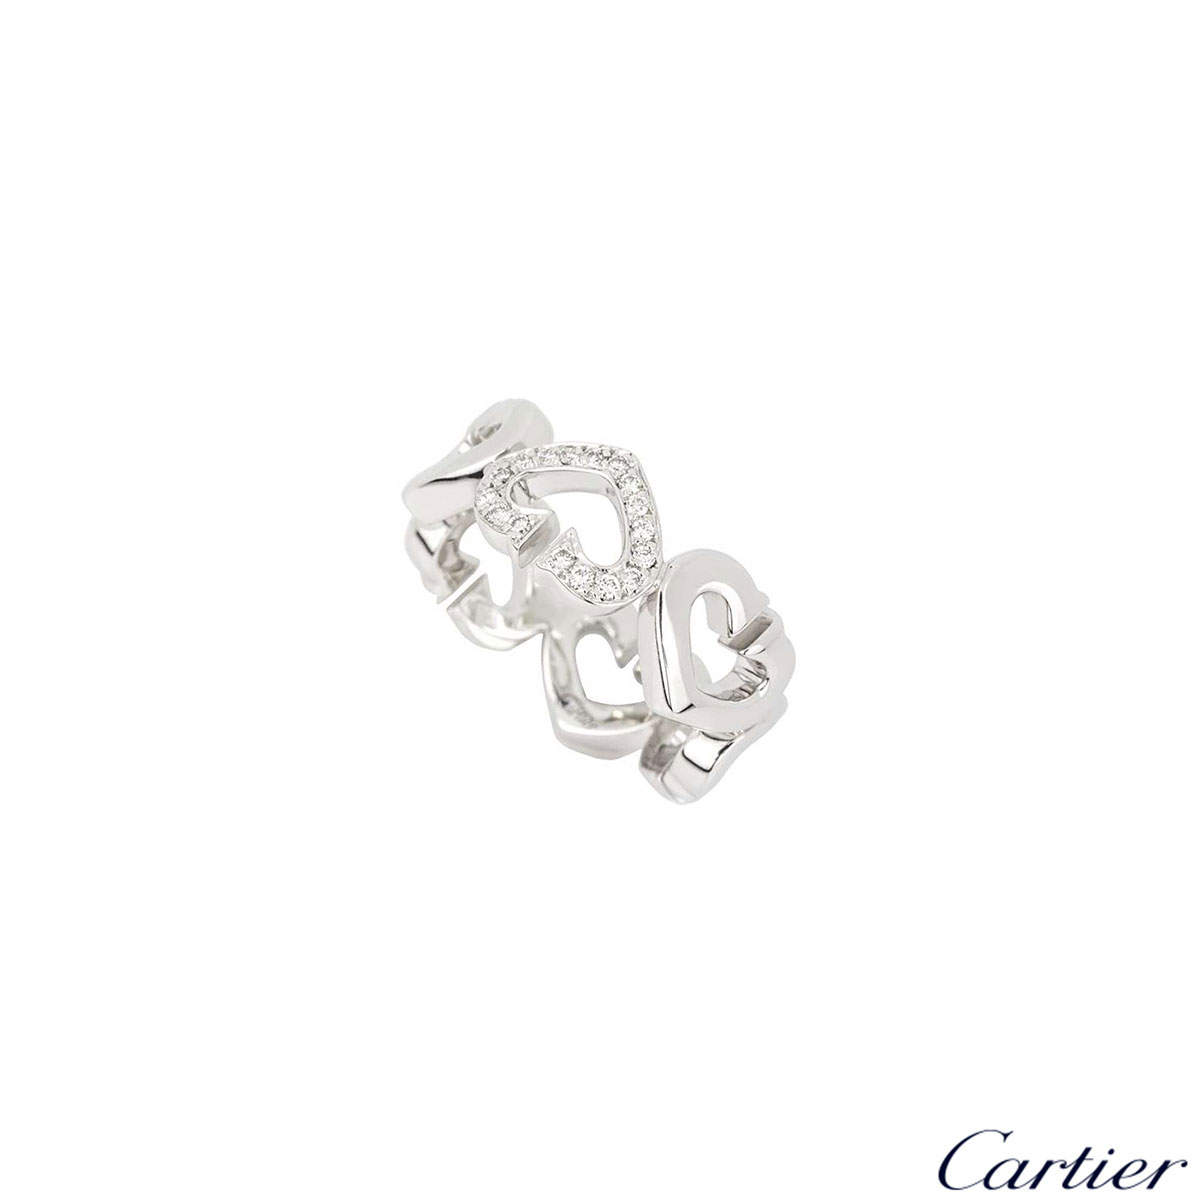 Cartier Hearts and Symbols Ring